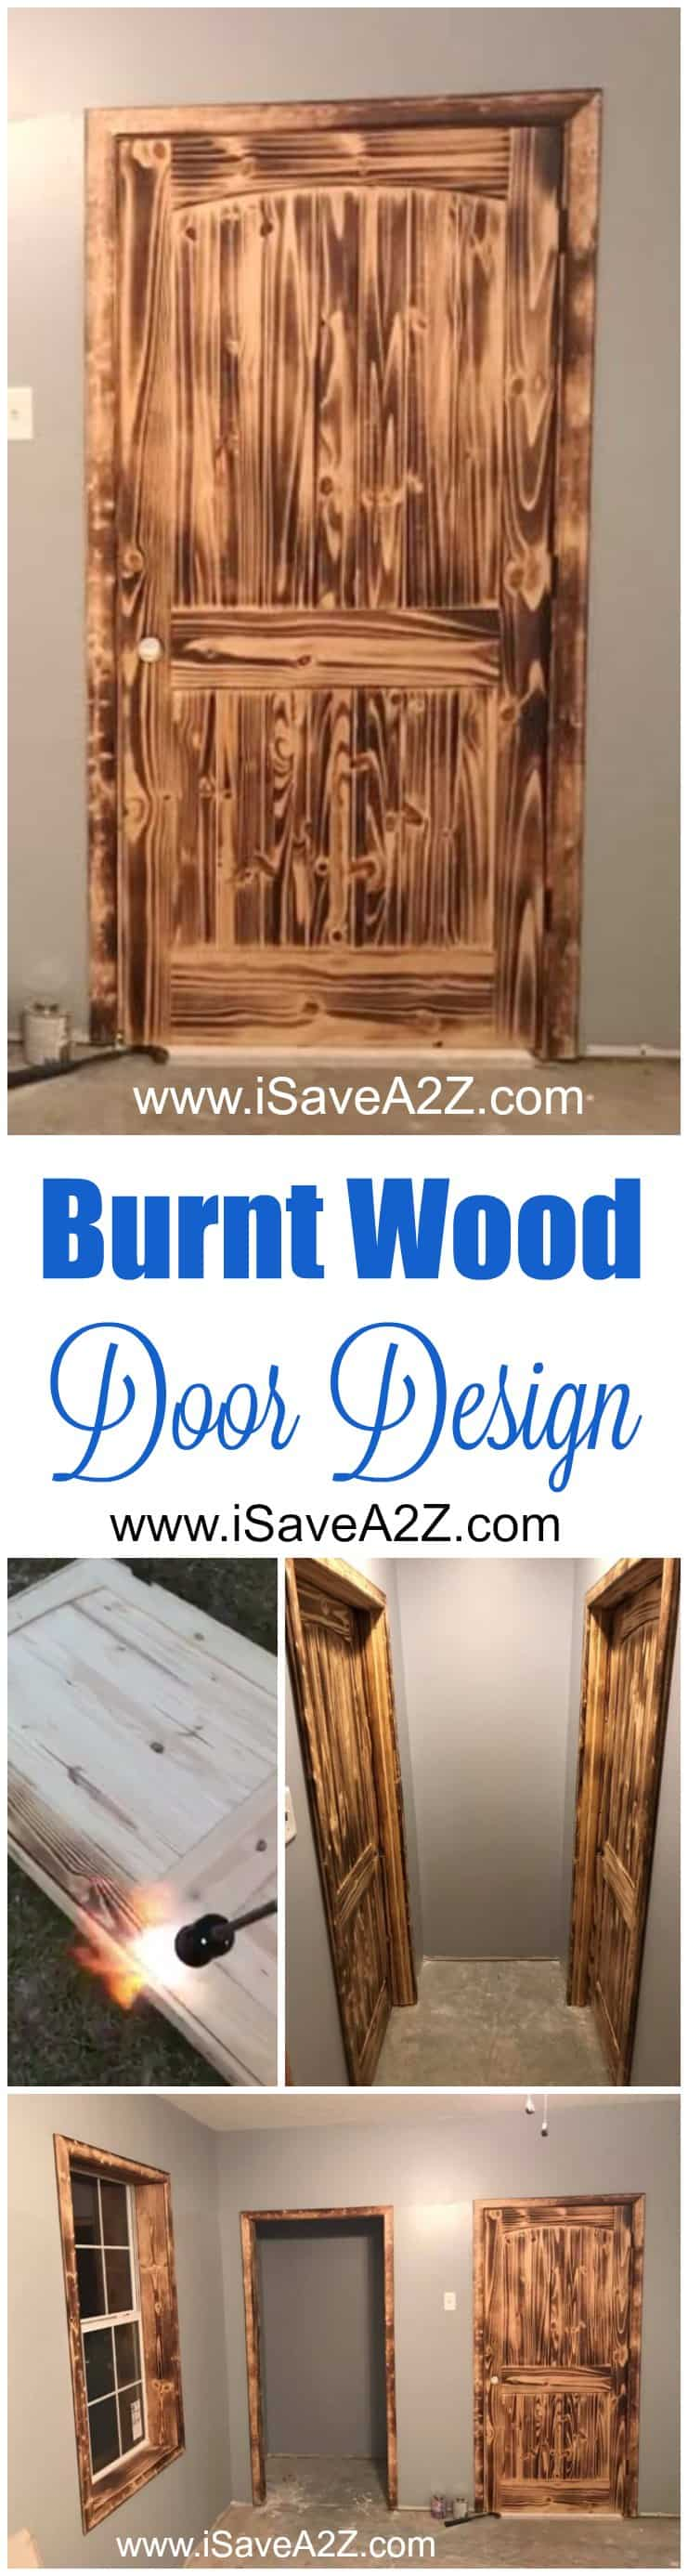 Burnt Wood Door Design Idea